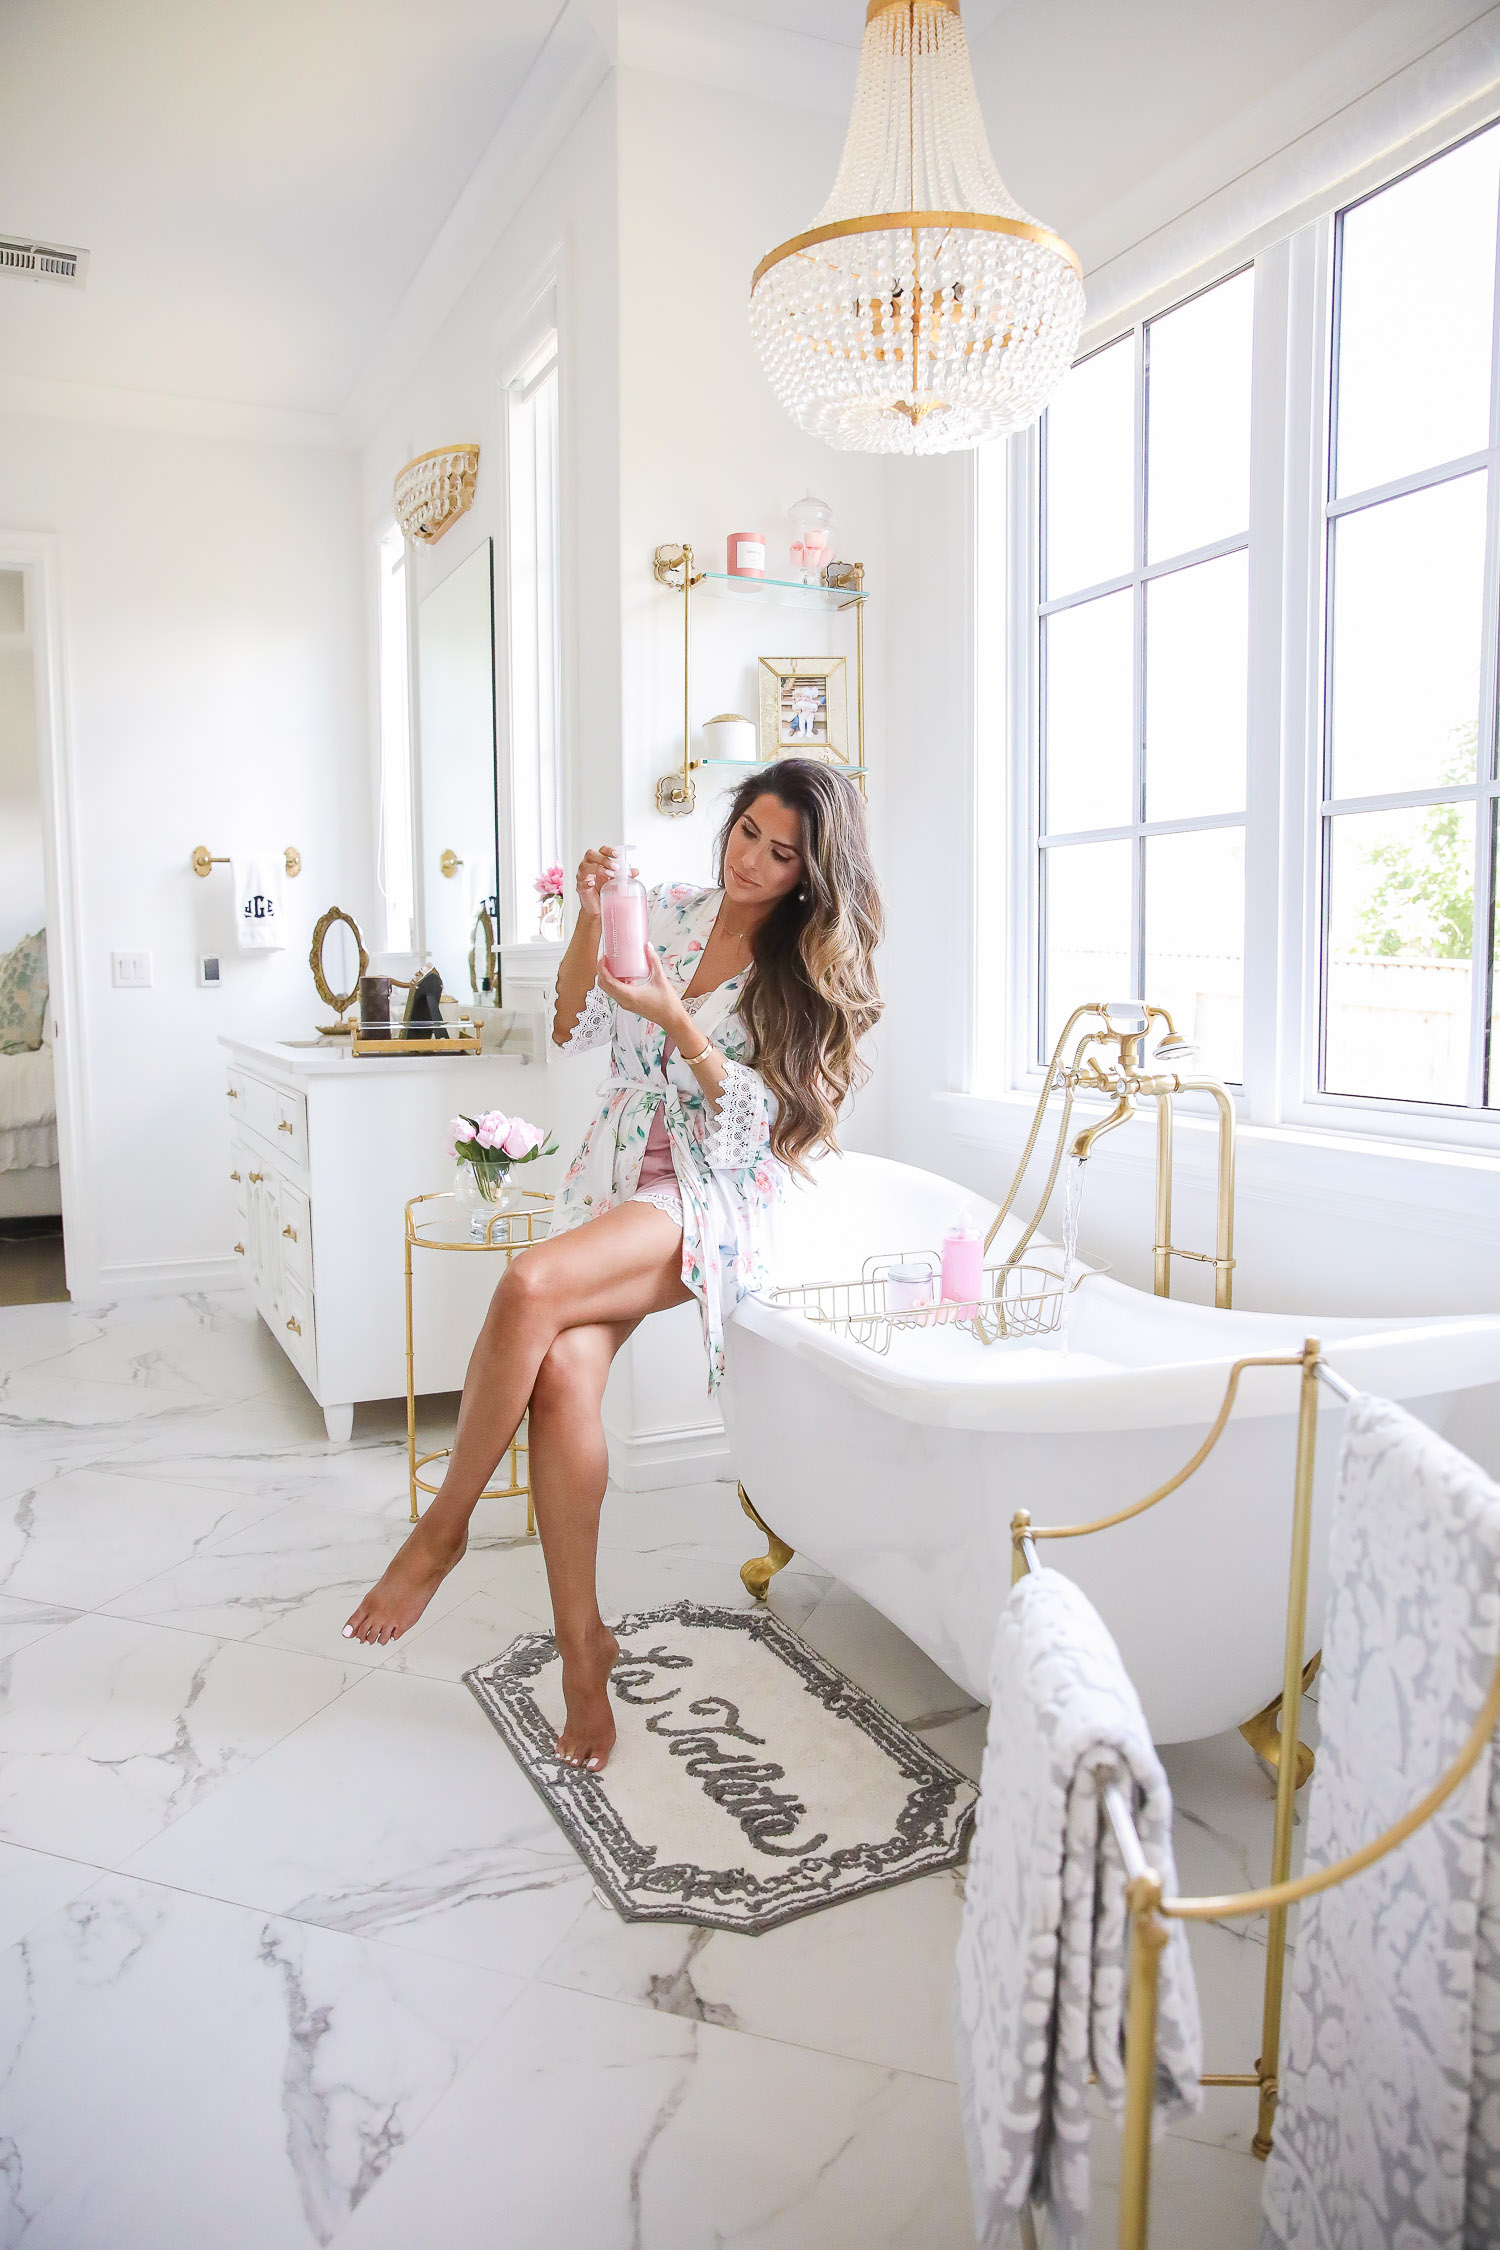 Top Picks by popular US life and style blog, The Sweetest Thing: image of Emily Gemma wearing a floral robe and sitting on the edge of her white and gold clawfoot tub and holding a bottle of body wash.